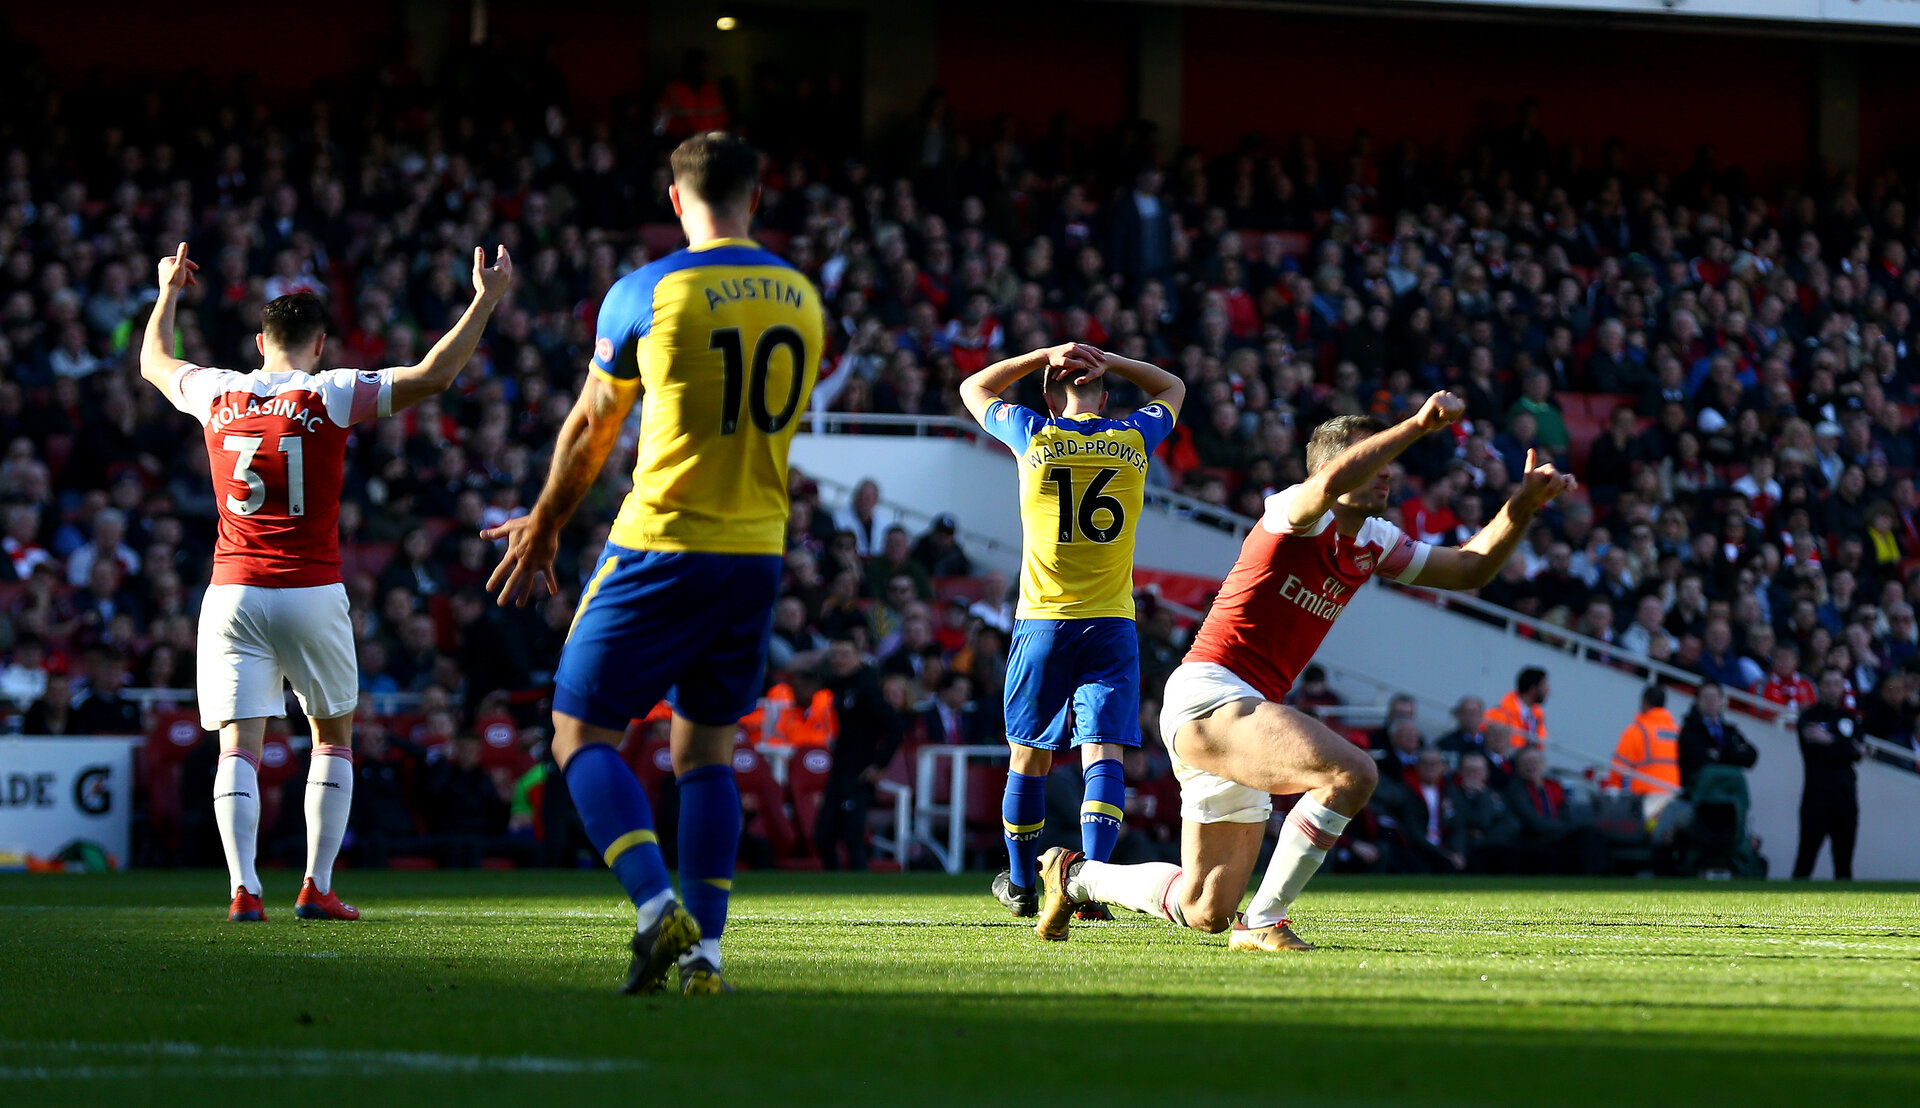 LONDON, ENGLAND - FEBRUARY 24: James Ward-Prowse of Southampton during the Premier League match between Arsenal FC and Southampton FC at Emirates Stadium on February 24, 2019 in London, United Kingdom. (Photo by Matt Watson/Southampton FC via Getty Images)